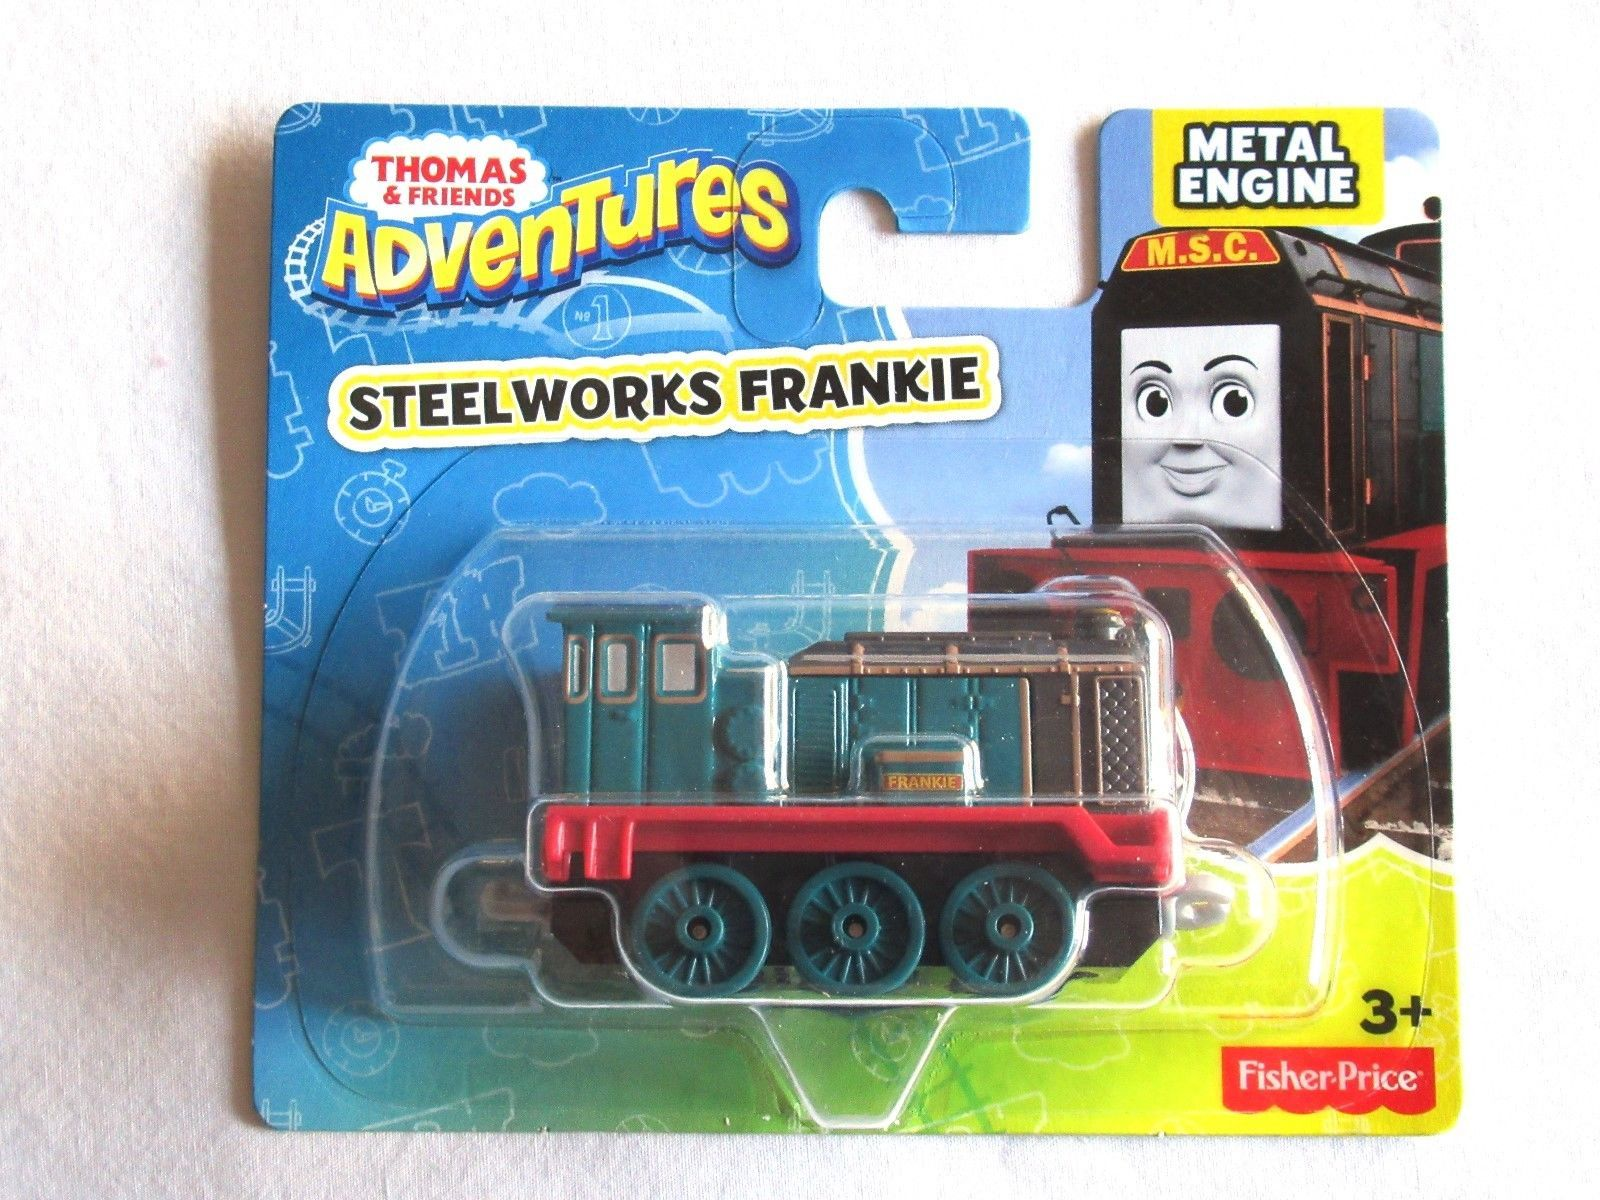 Primary image for Fisher Price Thomas & Friends Adventures Steelworks Frankie Metal Train Engine